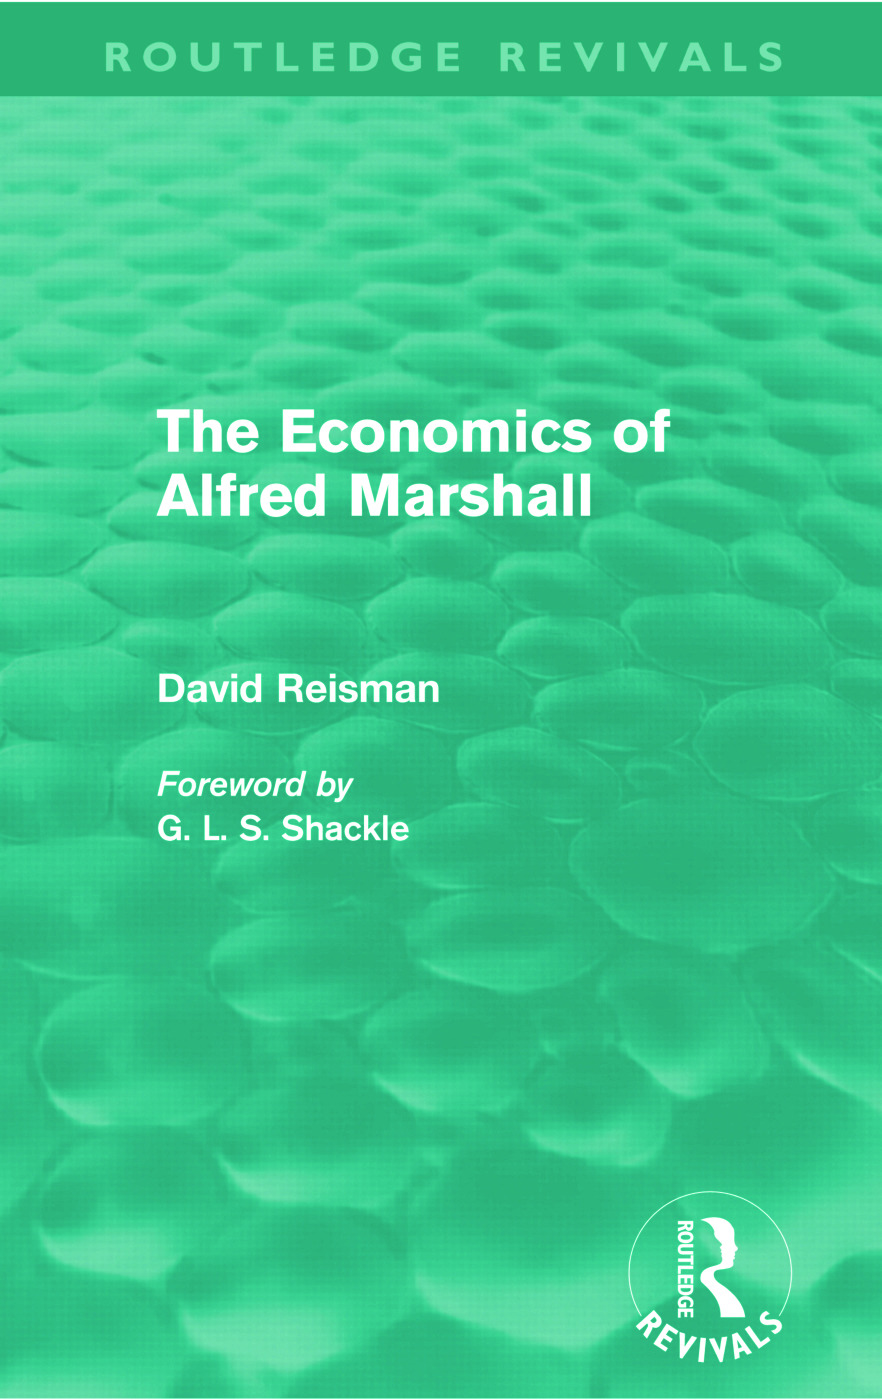 The Economics of Alfred Marshall (Routledge Revivals) (Paperback) book cover